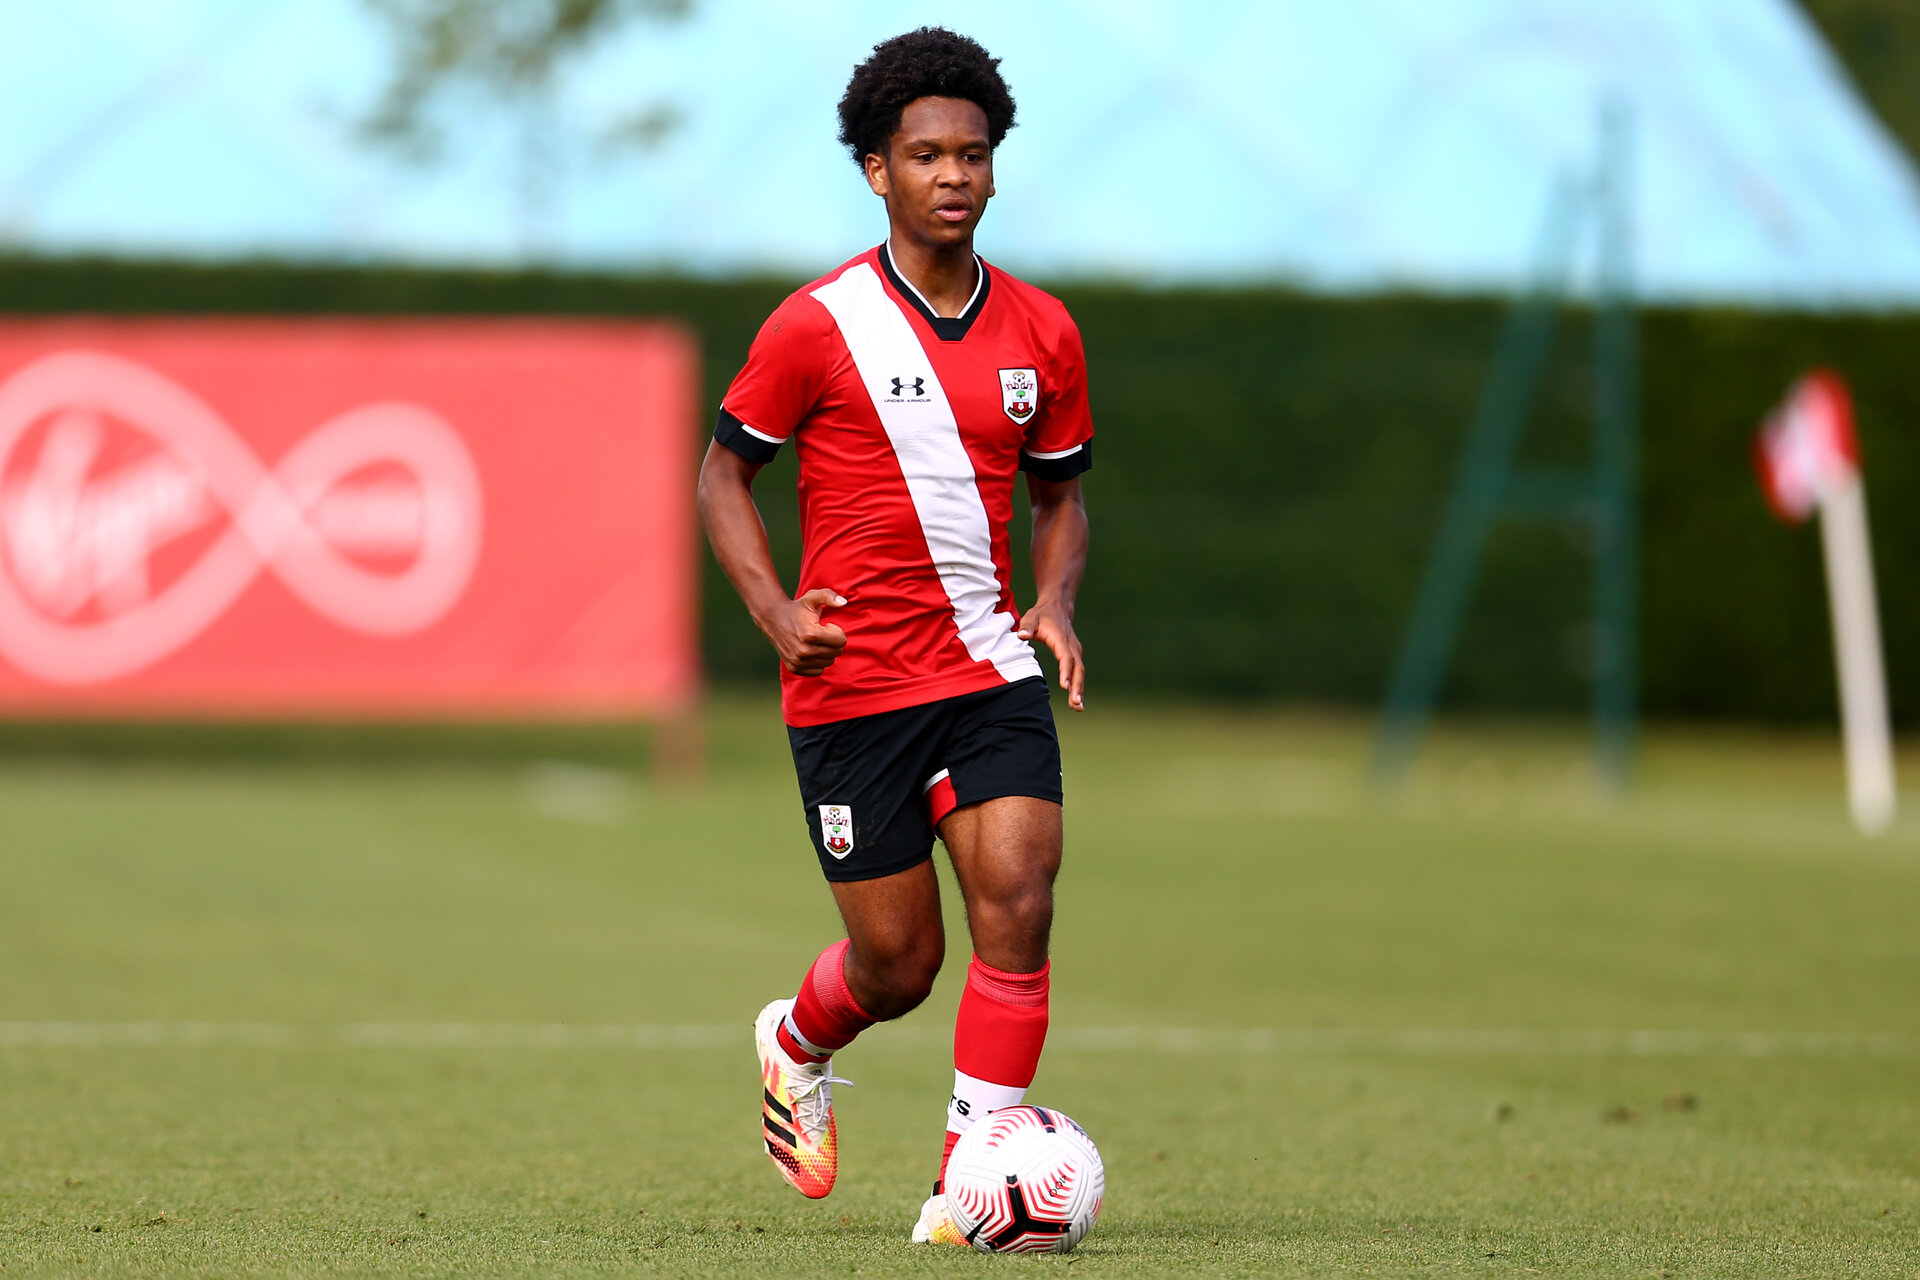 SOUTHAMPTON, ENGLAND - SEPTEMBER 19: Diamond Edwards of Southampton during the Premier League U18 match between Southampton FC U18 and Crystal Palace FC at Staplewood Training Ground on September 19, 2020 in Southampton, England. (Photo by Isabelle Field/Southampton FC via Getty Images)